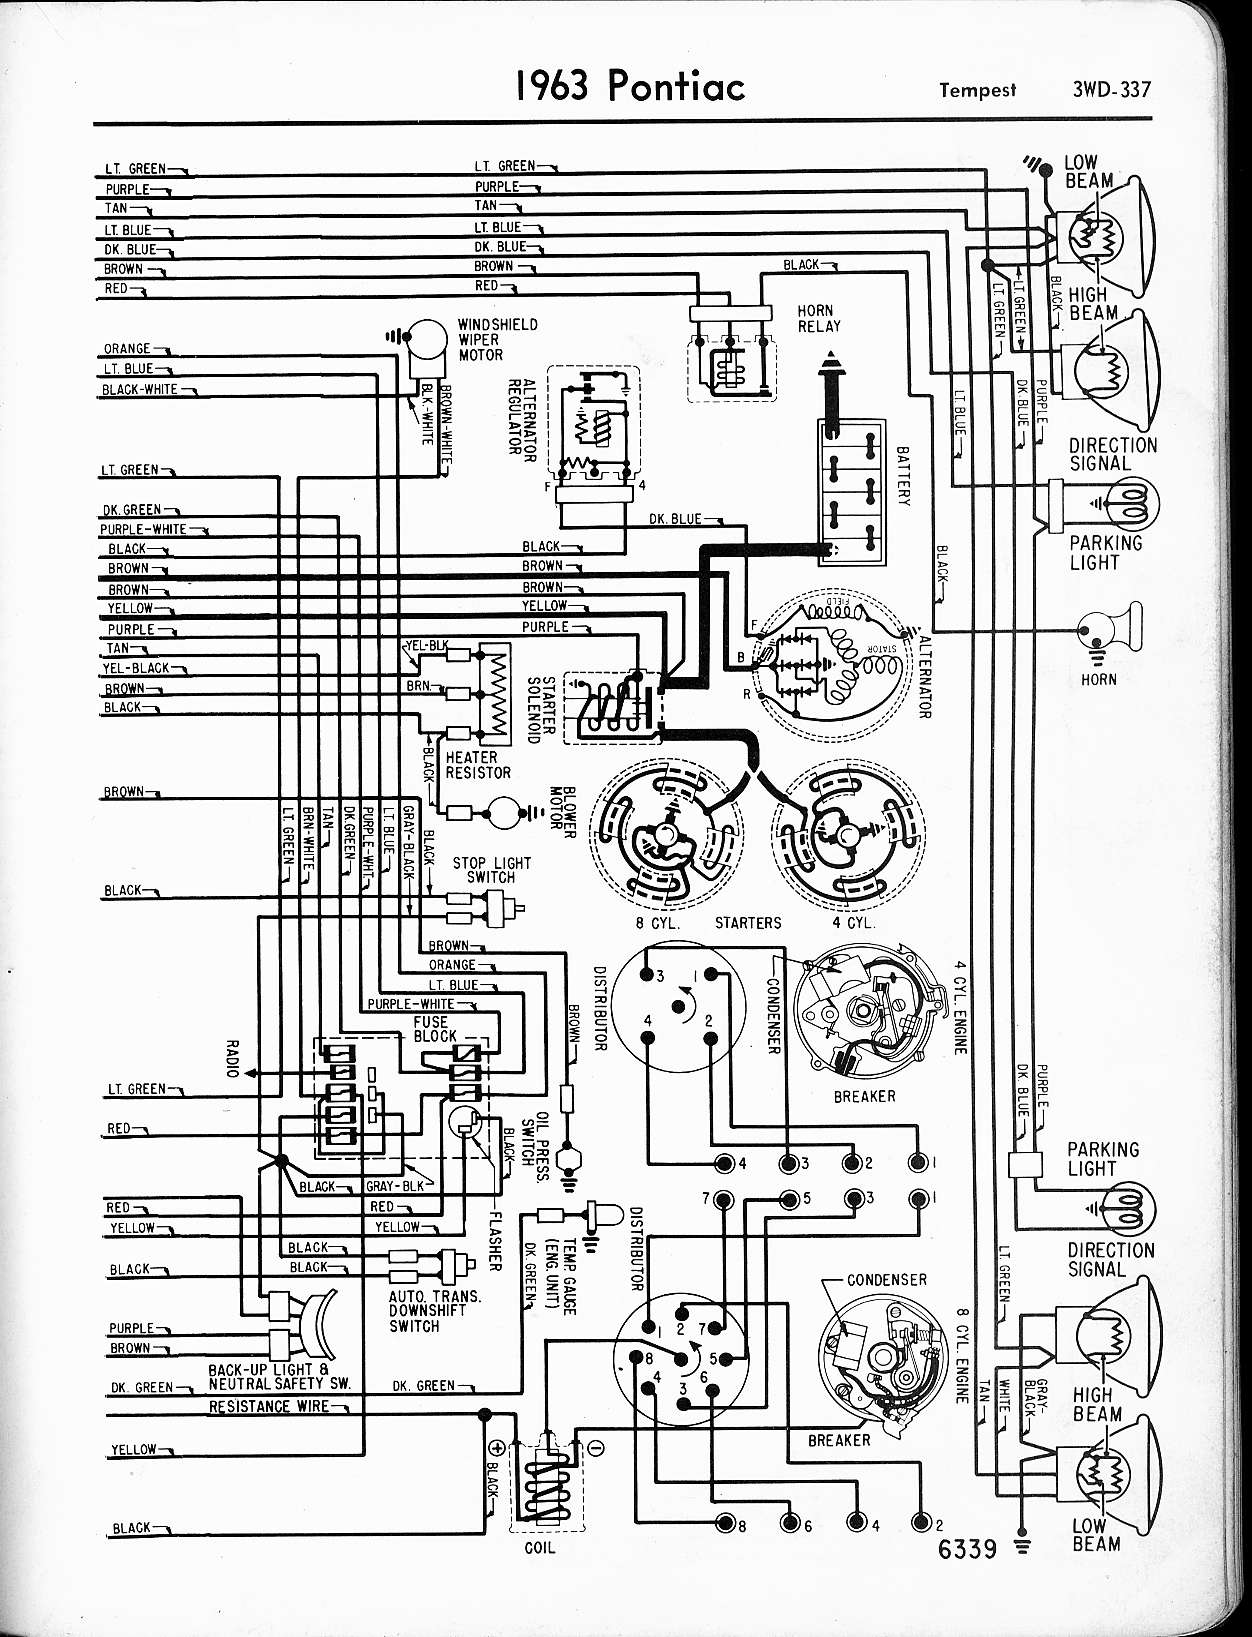 1963 Vw Engine Wiring Library Diagrams Pontiac 1957 1965 Rh Oldcarmanualproject Com 1971 Firebird Diagram